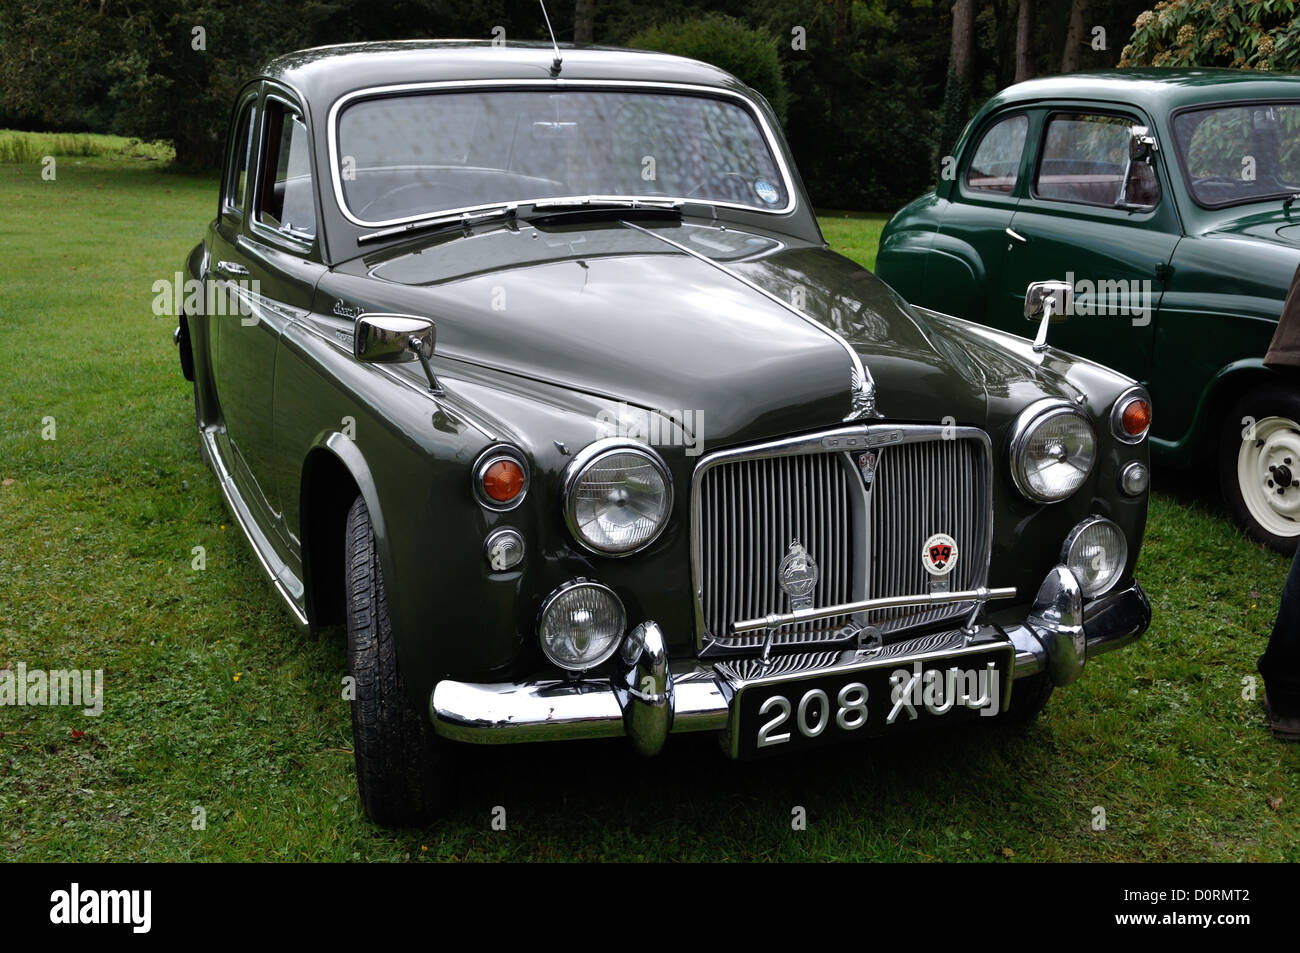 Rover P90 at classic car show rally rhos y gilwen mansion pembrokeshire wales - Stock Image